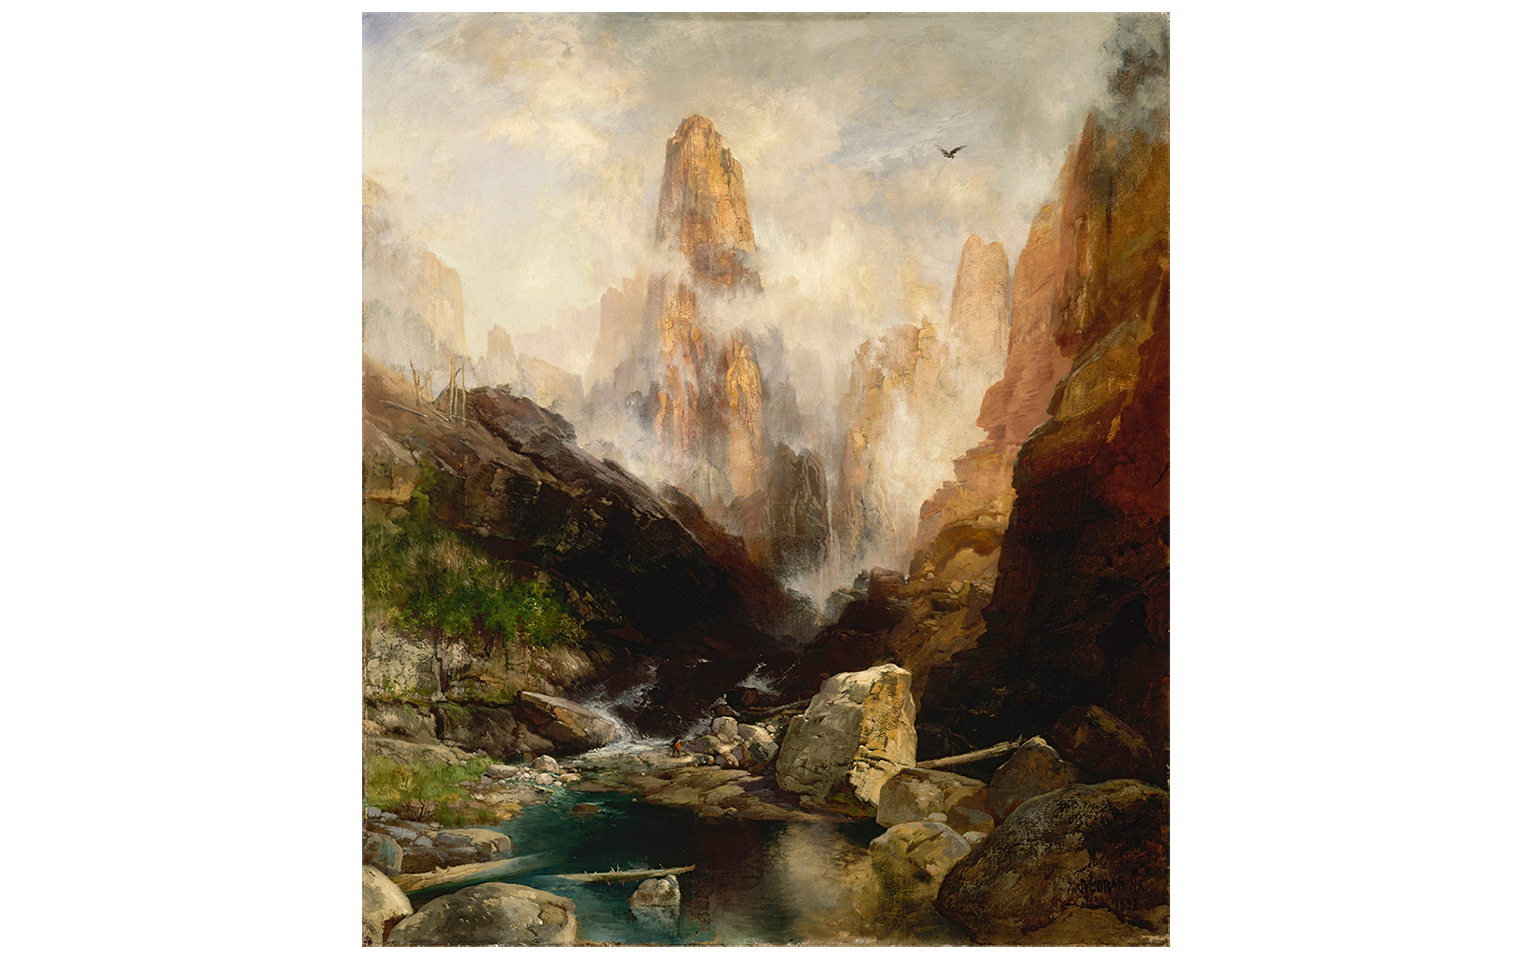 Thomas Moran's Mist in Kanab Canyon, Utah (1892)